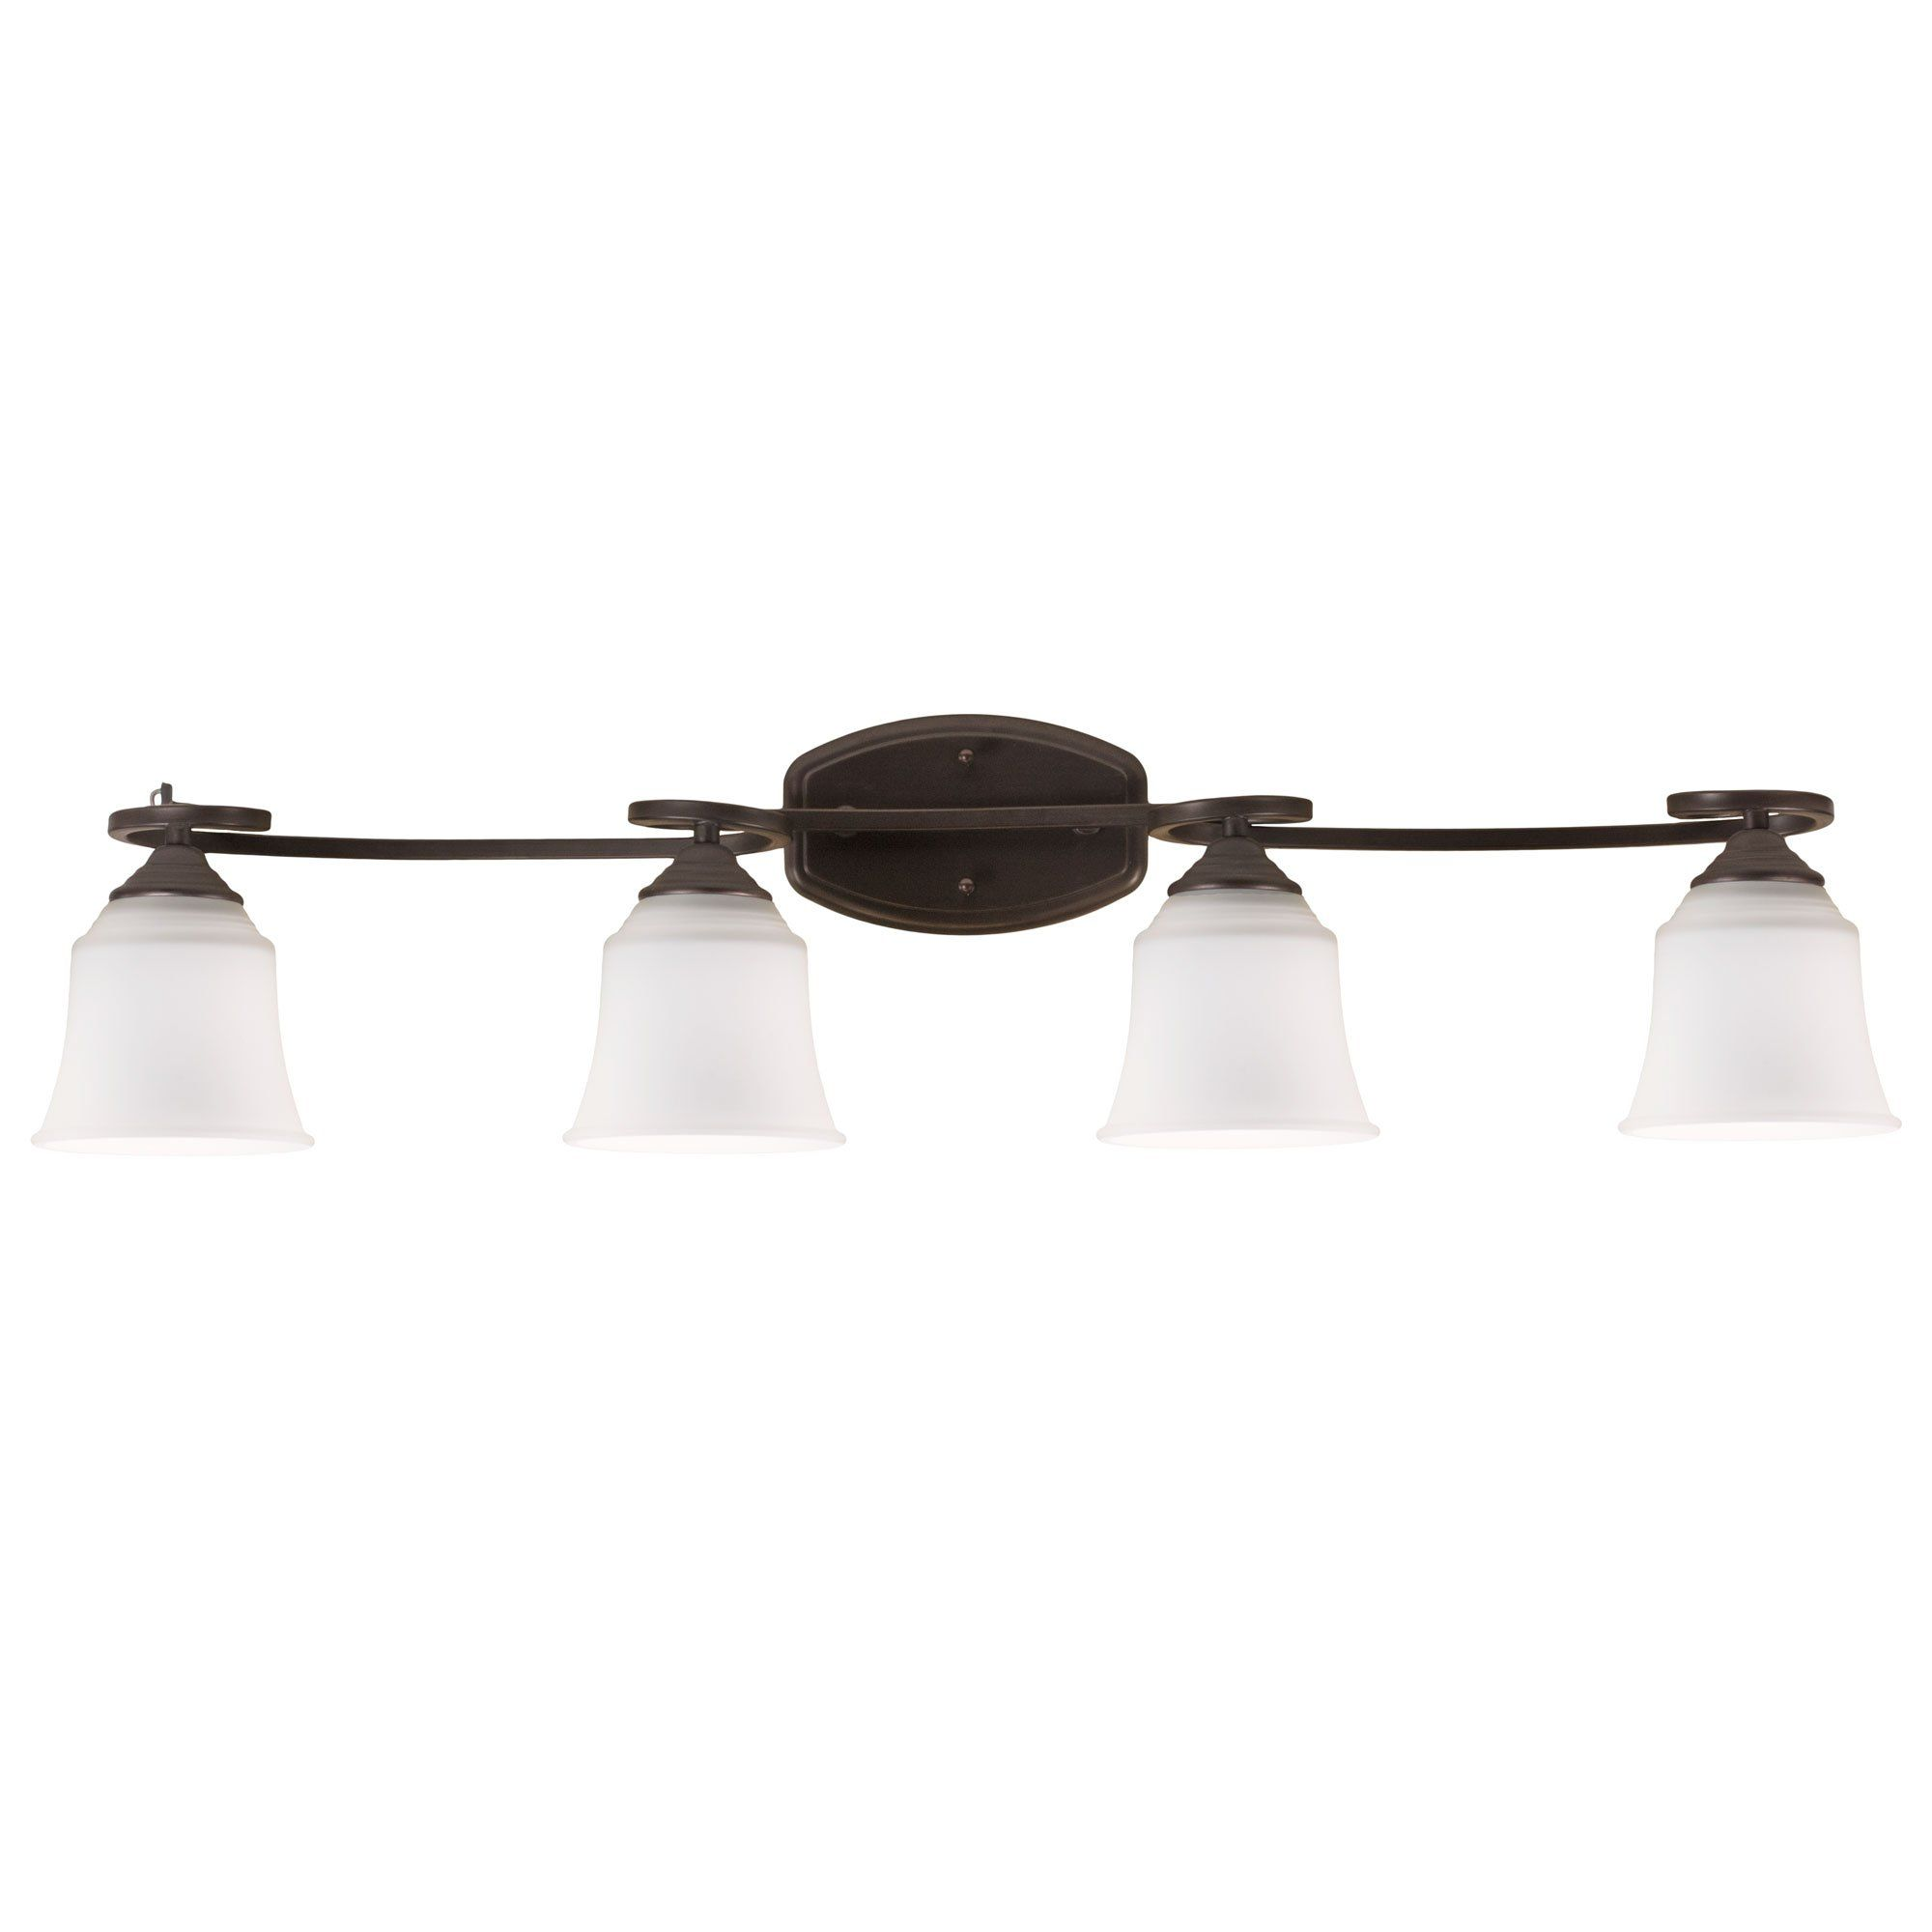 Oil Rubbed Bronze Vanity Light 4 Bulb Bath Wall Fixture Curled Base